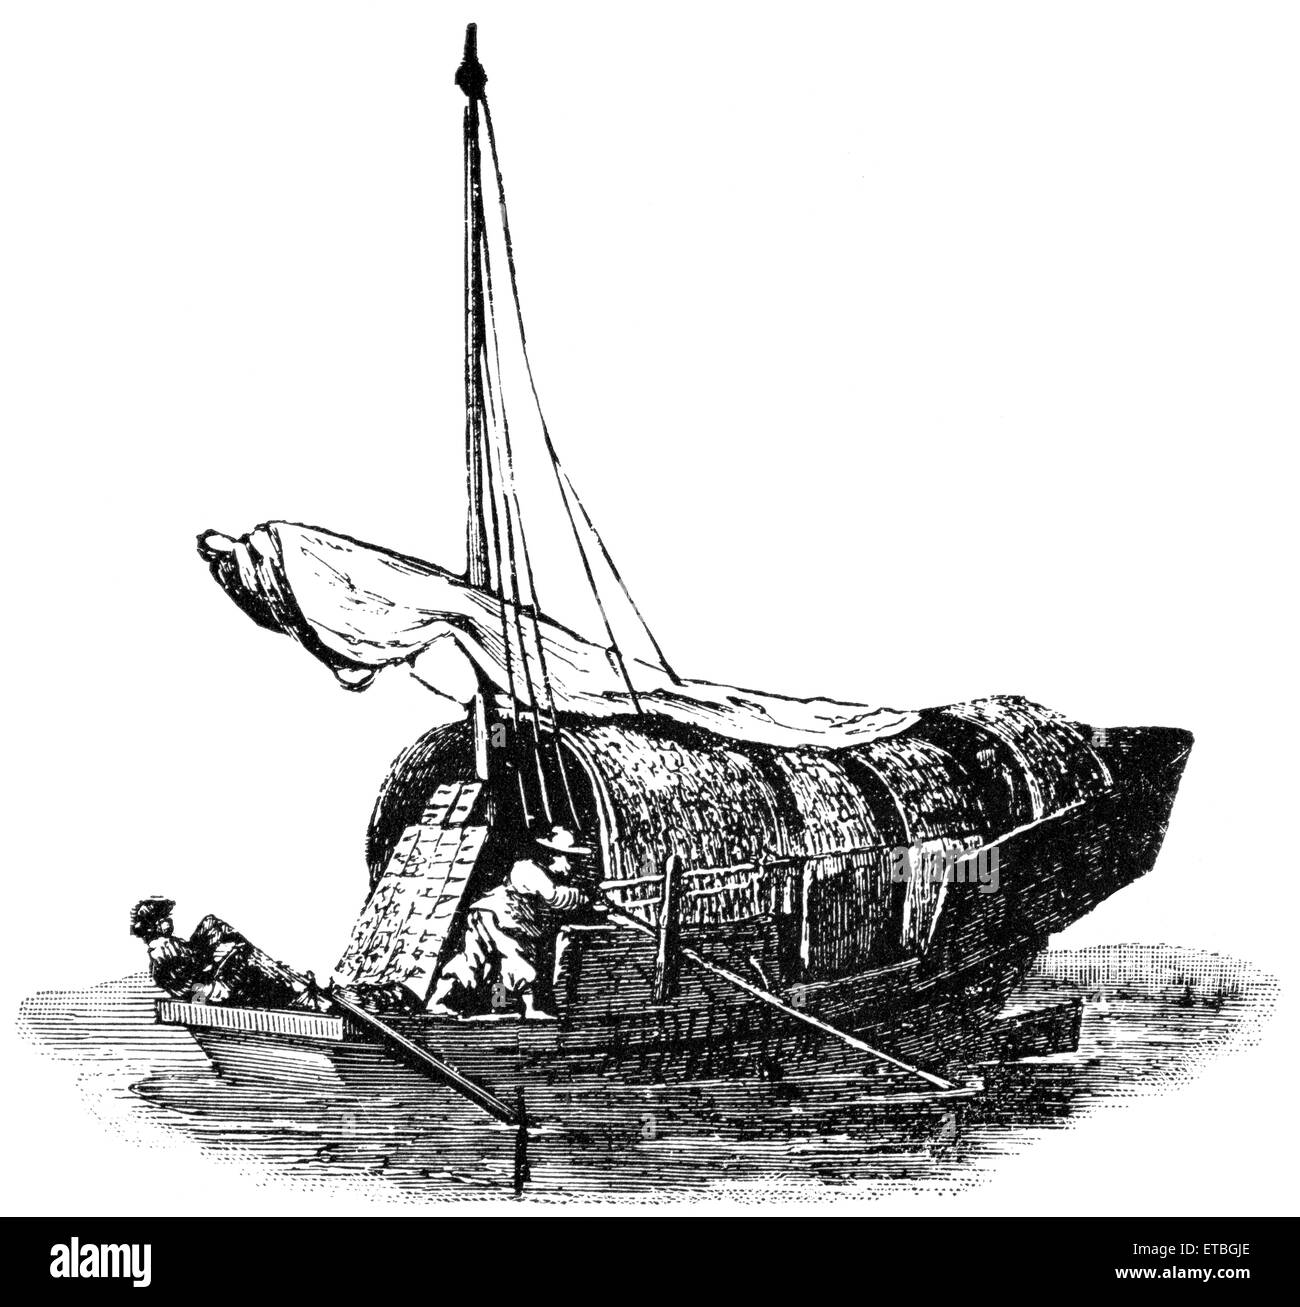 Native Vessel on Canton River, China, 'Classical Portfolio of Primitive Carriers', by Marshall M. Kirman, - Stock Image